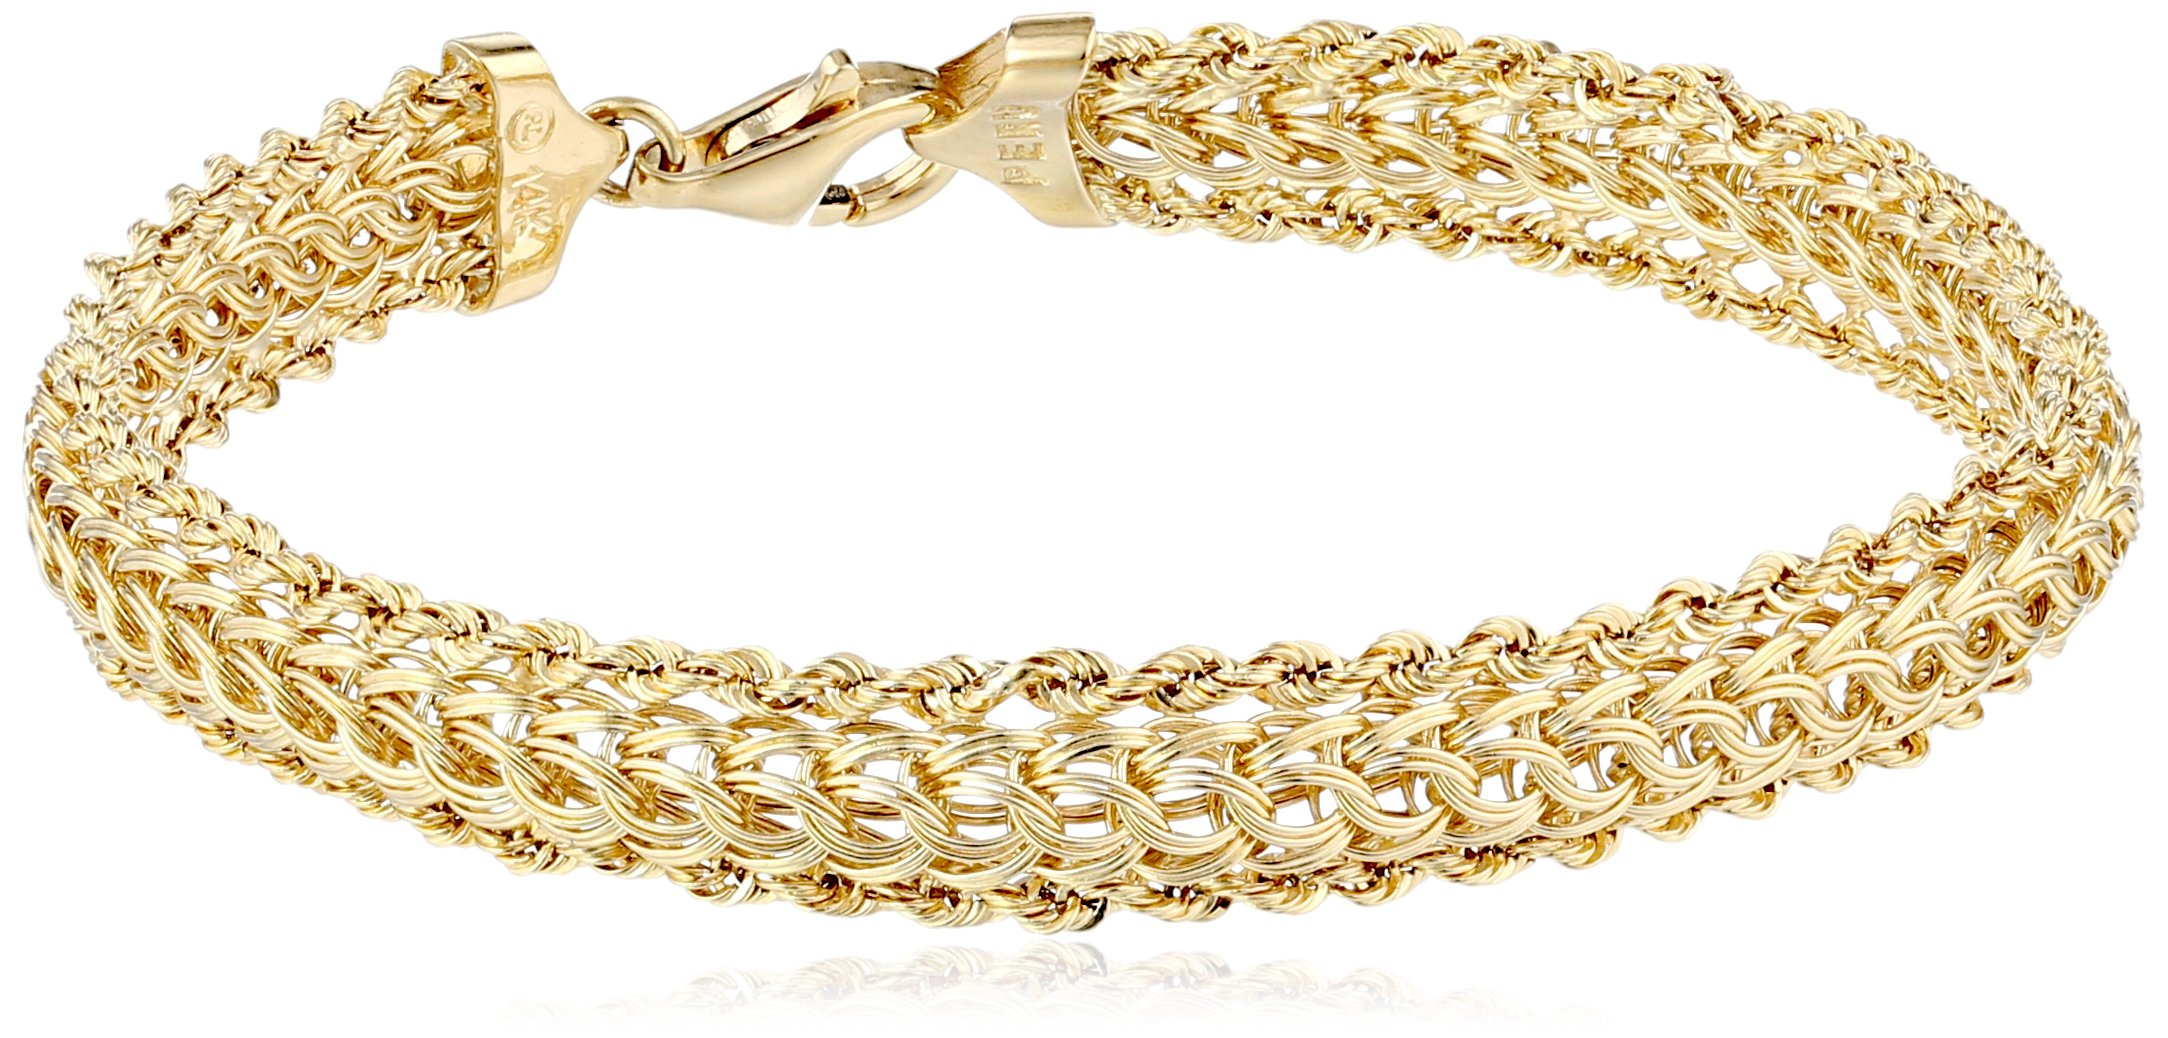 14K Yellow Gold Braided Rope Bracelet, 7.25'' by Amazon Collection (Image #1)